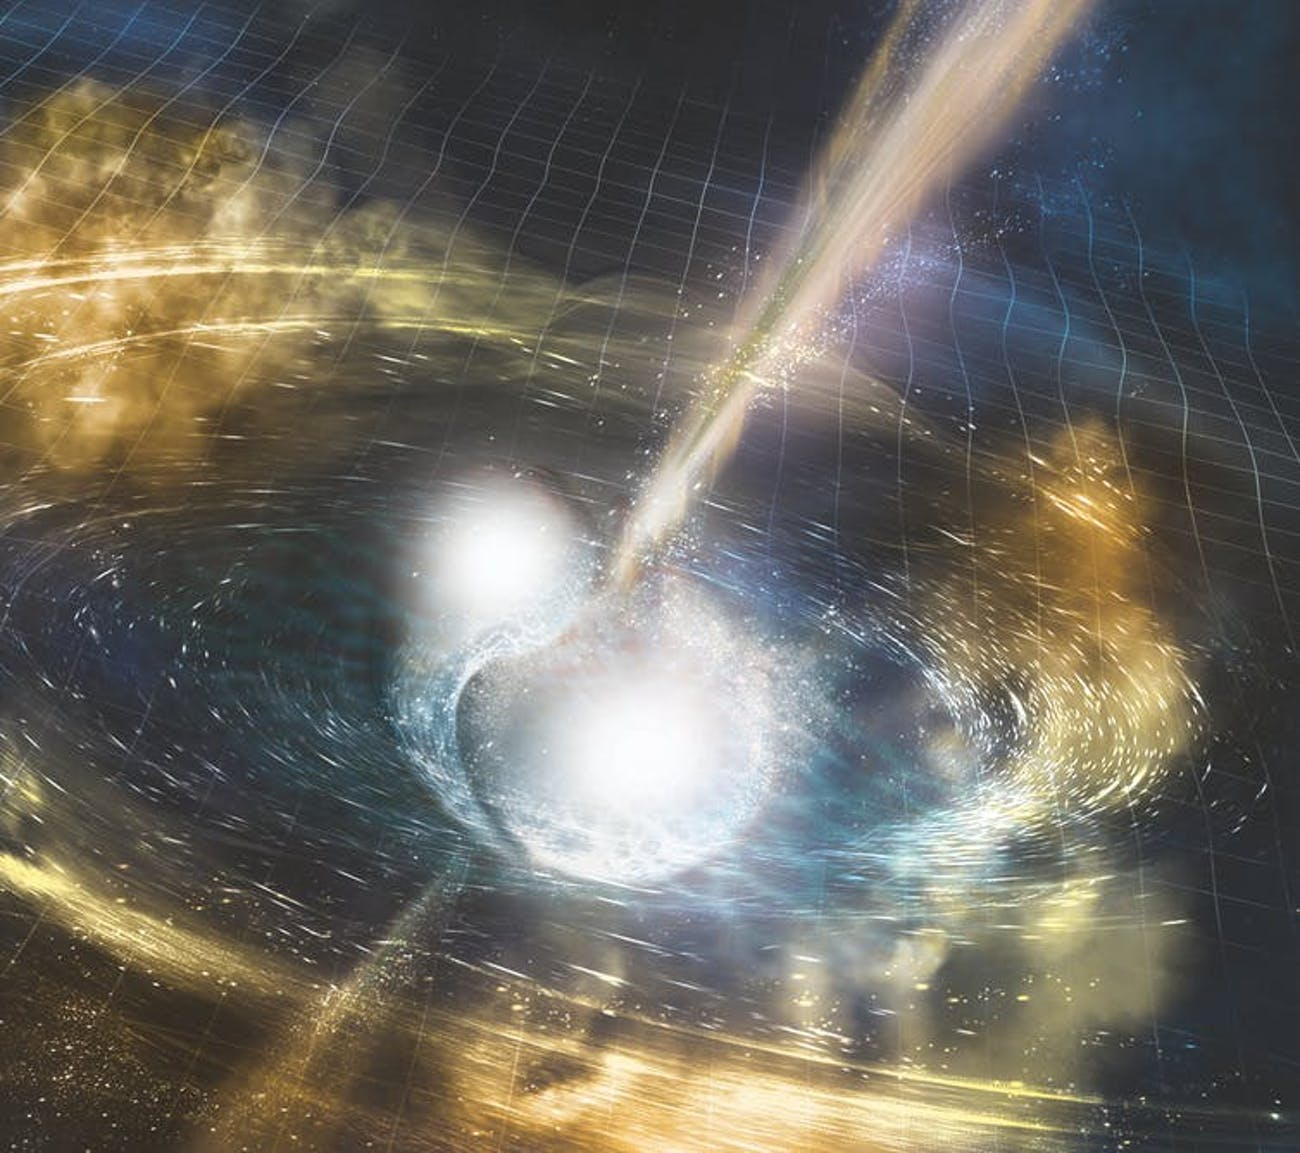 An artist's depiction of a space warping collision of two merging neutron stars. The ripples represent the gravitational waves that distort the space-time grid. The narrow beams shooting out of the collision show the gamma rays burst that are released after the gravitational waves. The yellow clouds glow with other wavelengths of light that are generated in the collision.